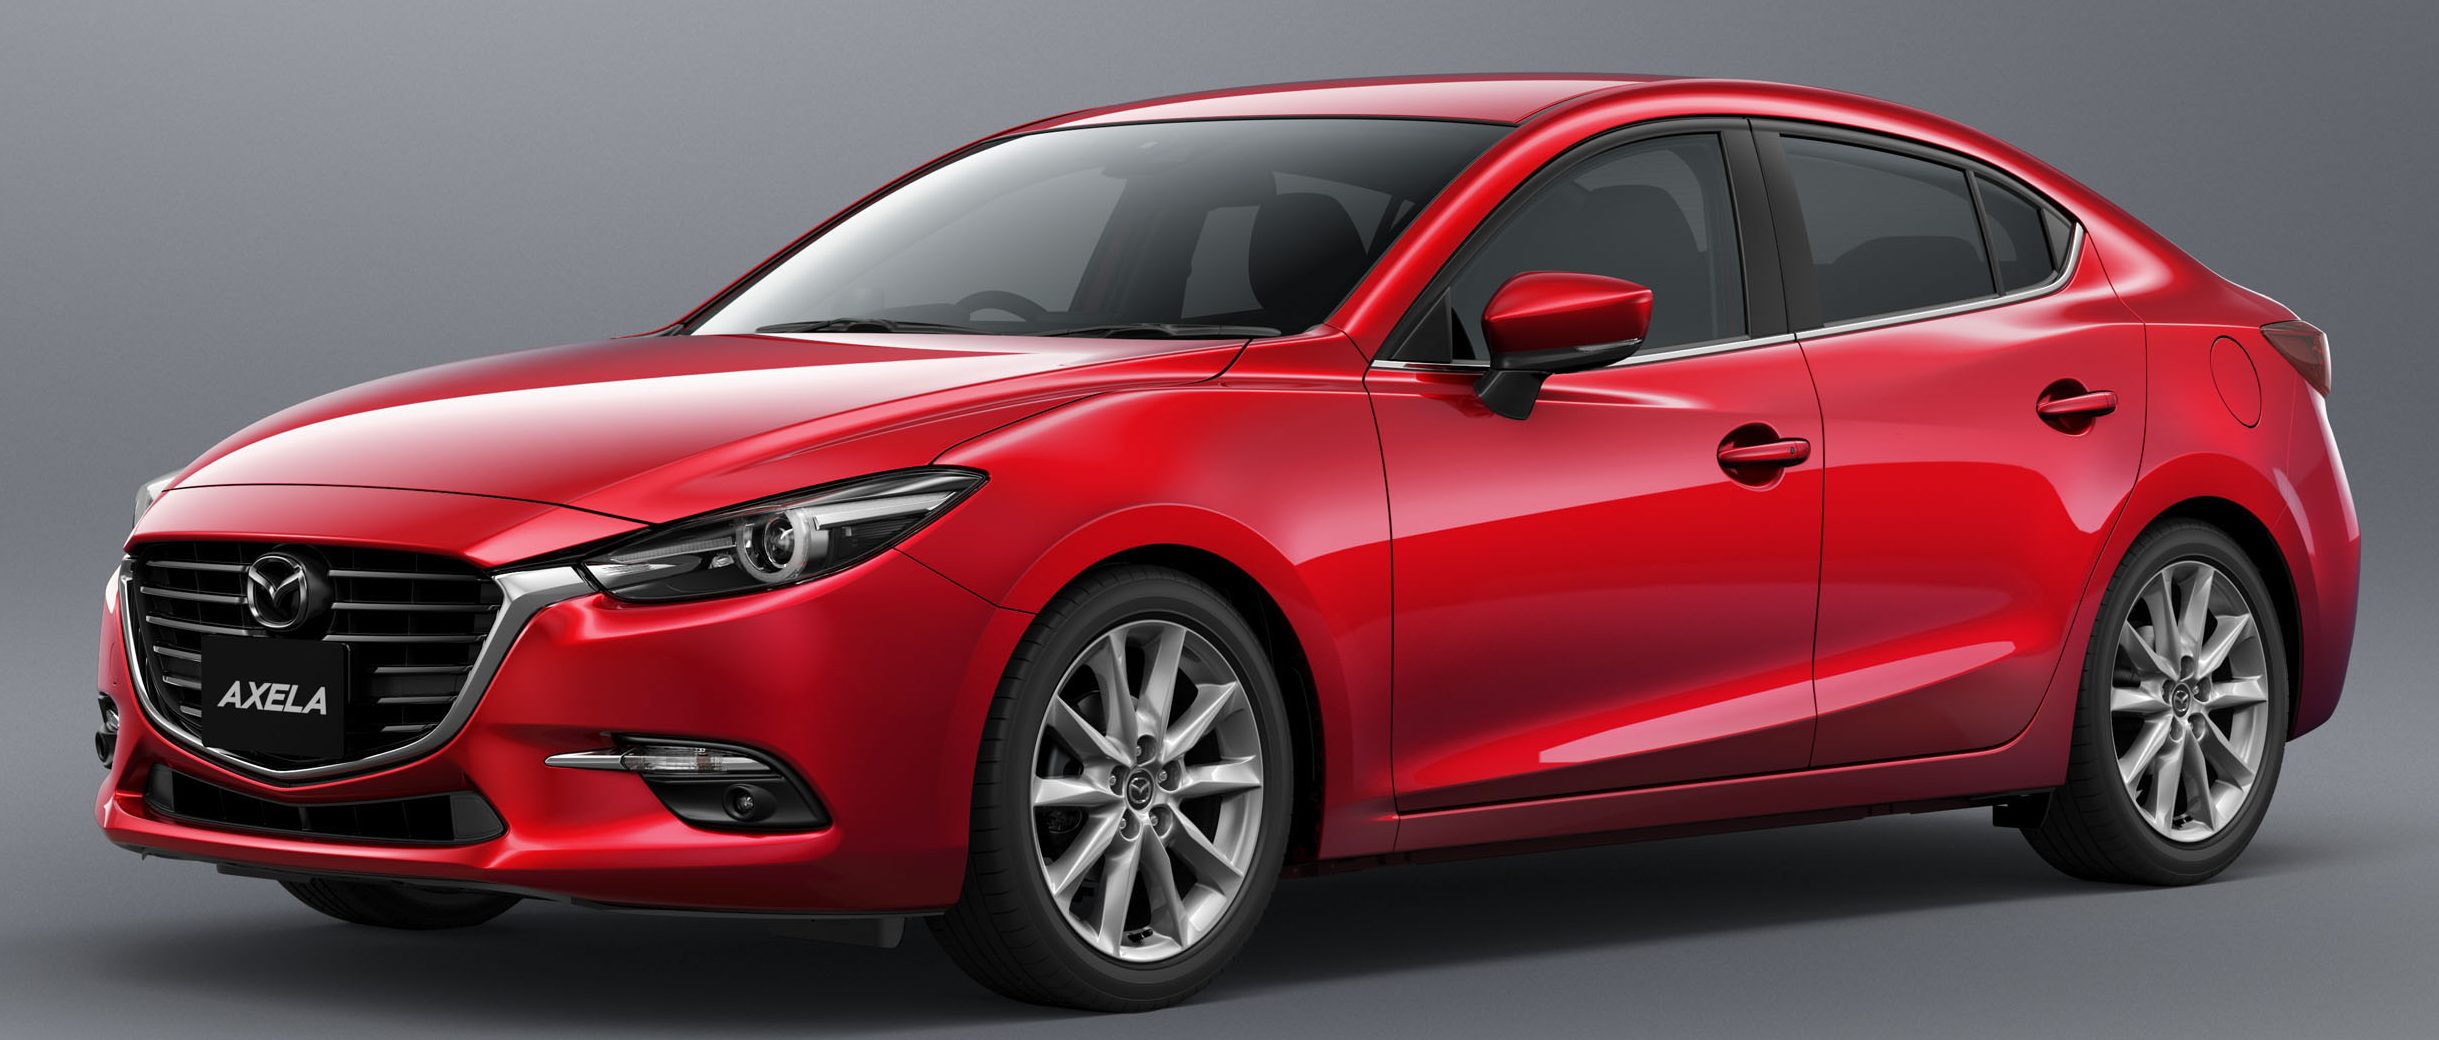 2016 mazda 3 facelift officially revealed new looks updated powertrain line up additional. Black Bedroom Furniture Sets. Home Design Ideas